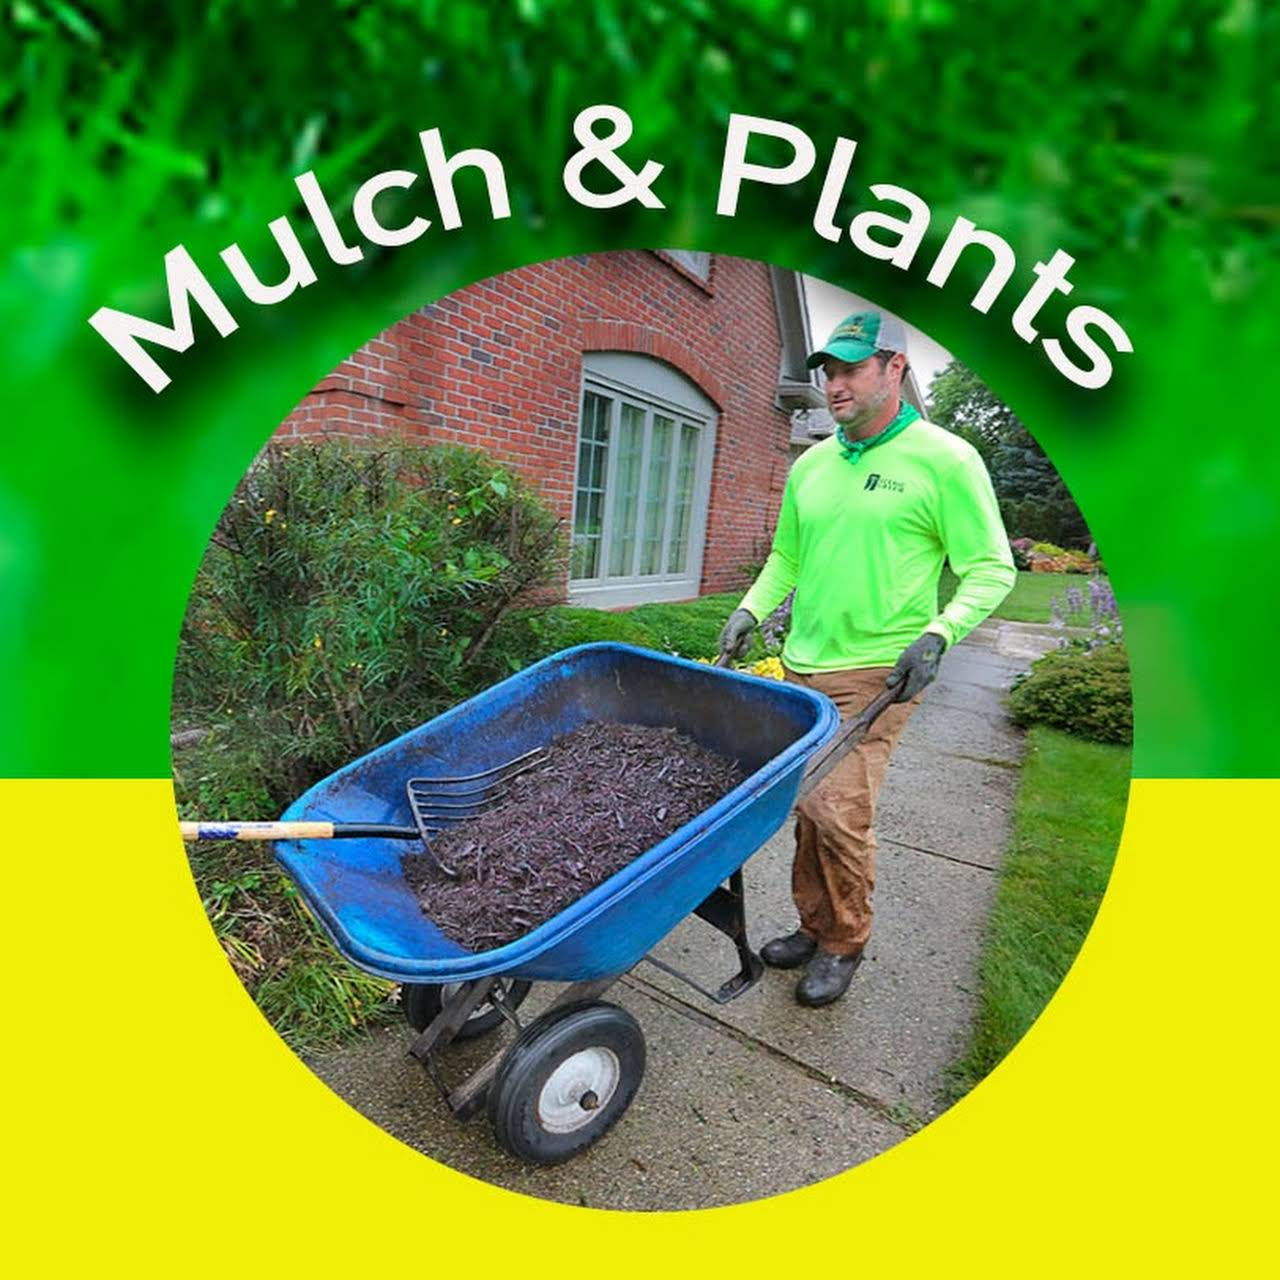 Froggy's Landscaping - Landscaping Lawn Mowing Mulch Spring Cleaning